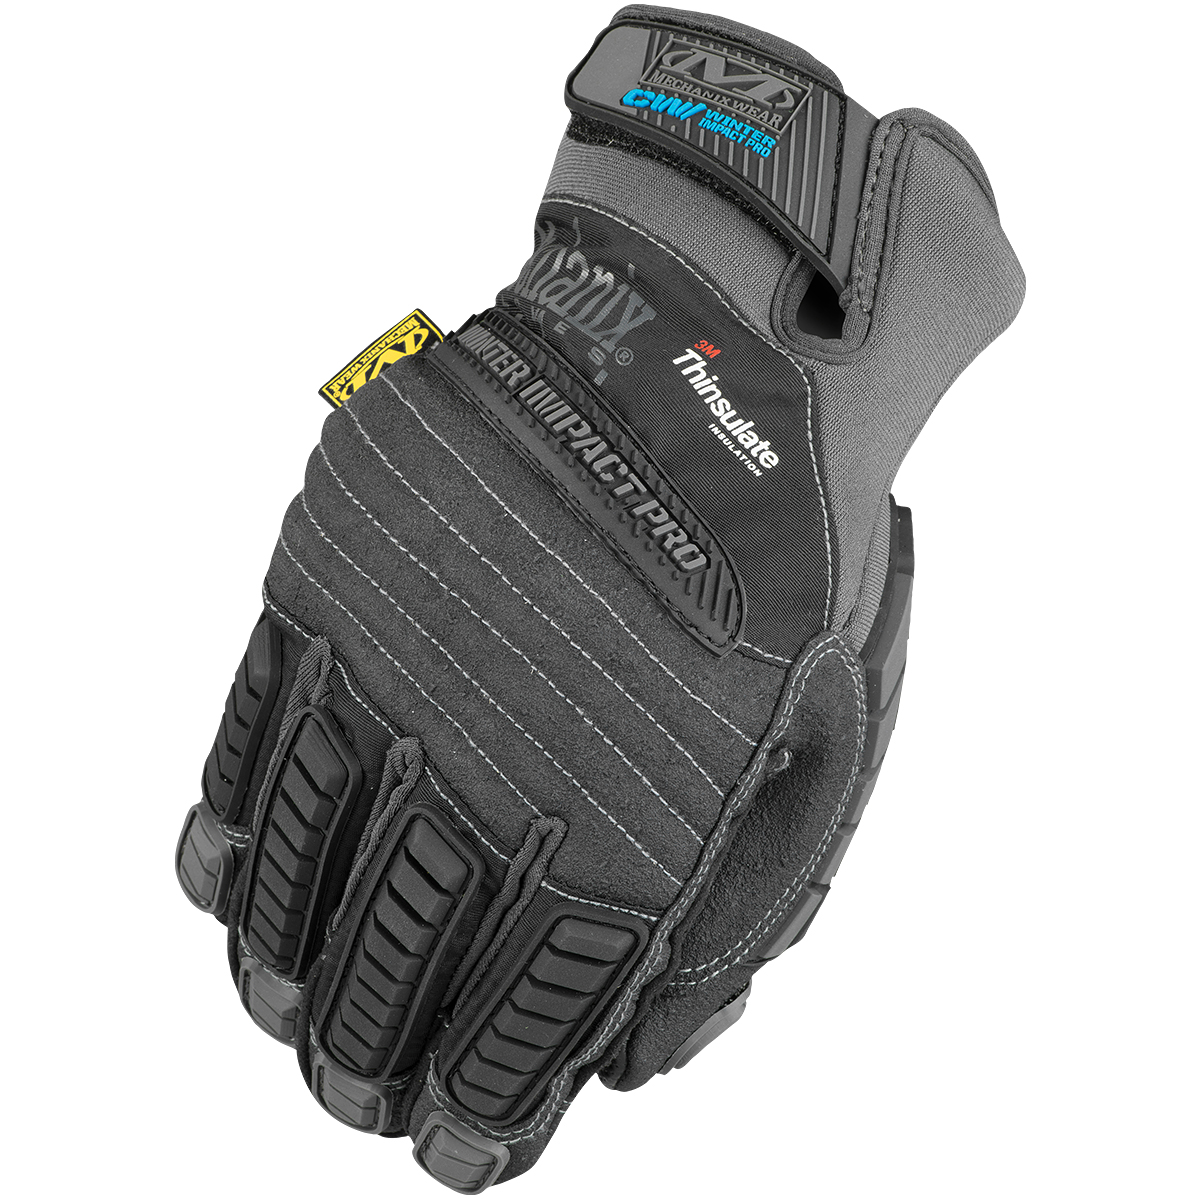 Despite its imitators, The Original glove remains in a category all its own. Tried, tested and proven for over 20 years, it provides the perfect blend of flexibility and protection.